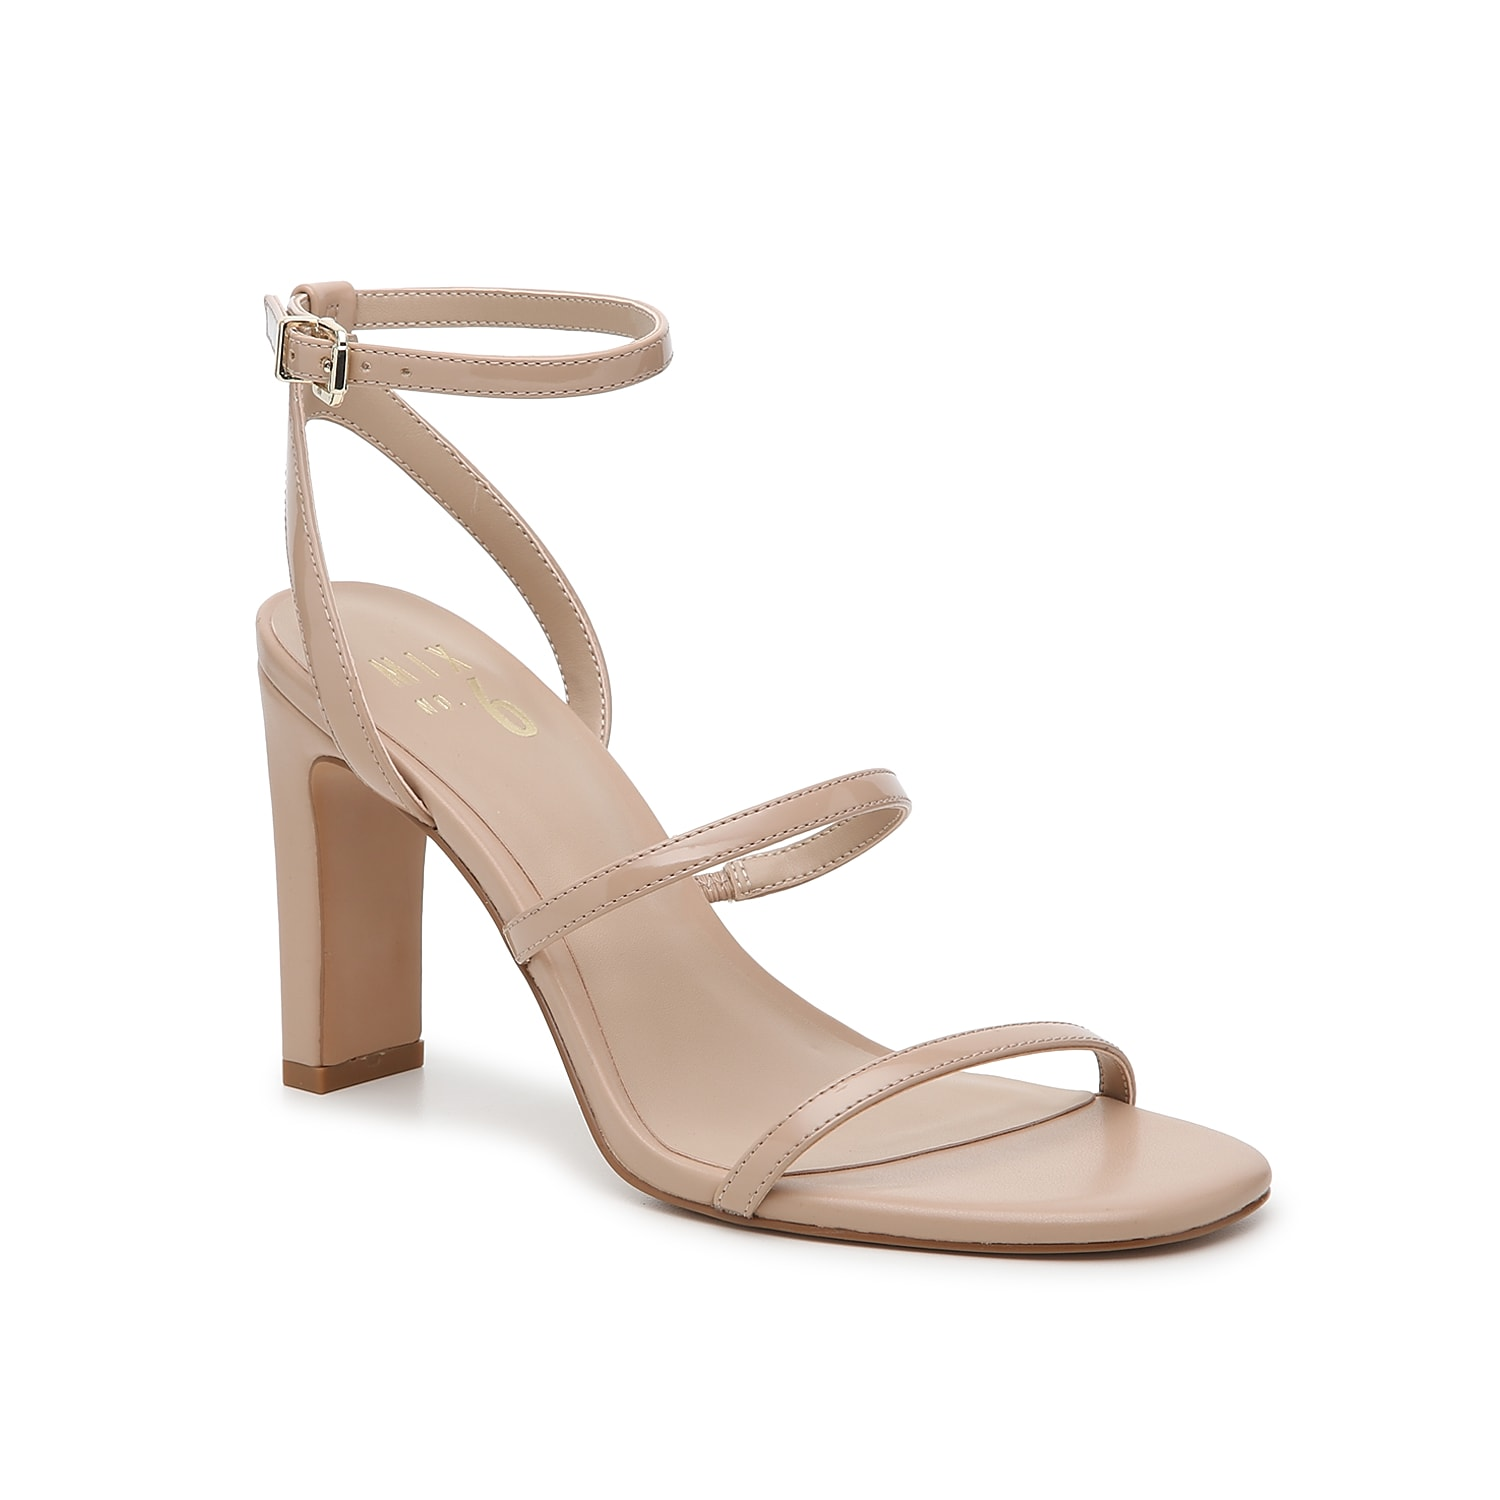 Strut your stuff when wearing the Aliciana sandal from Mix No. 6. This pretty pair is fashioned with three skinny straps and a square open toe for a modern finishing touch!